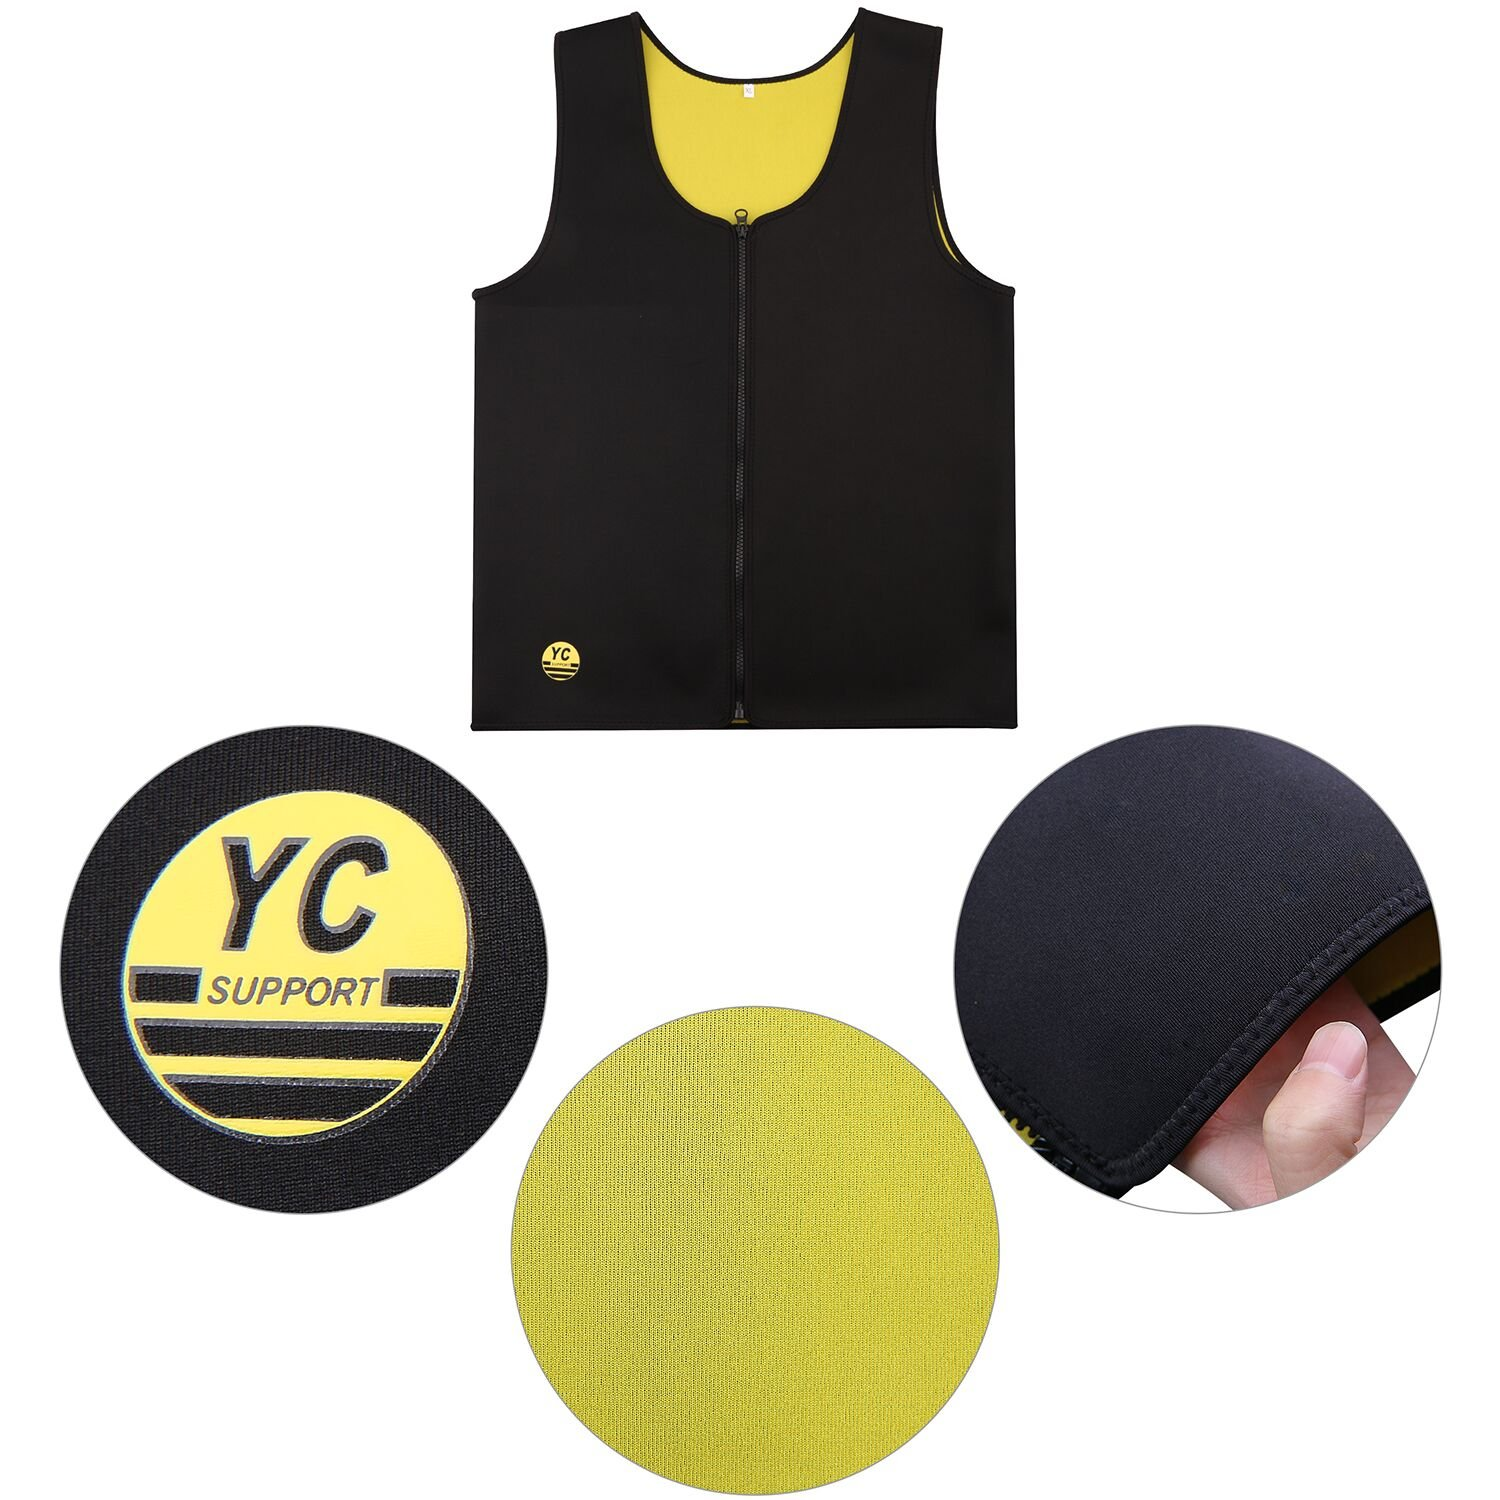 XL YC SUPPORT Sauna Vest For Men Promotes Body Heat Muscle Training Body Shaper Slimming Vest